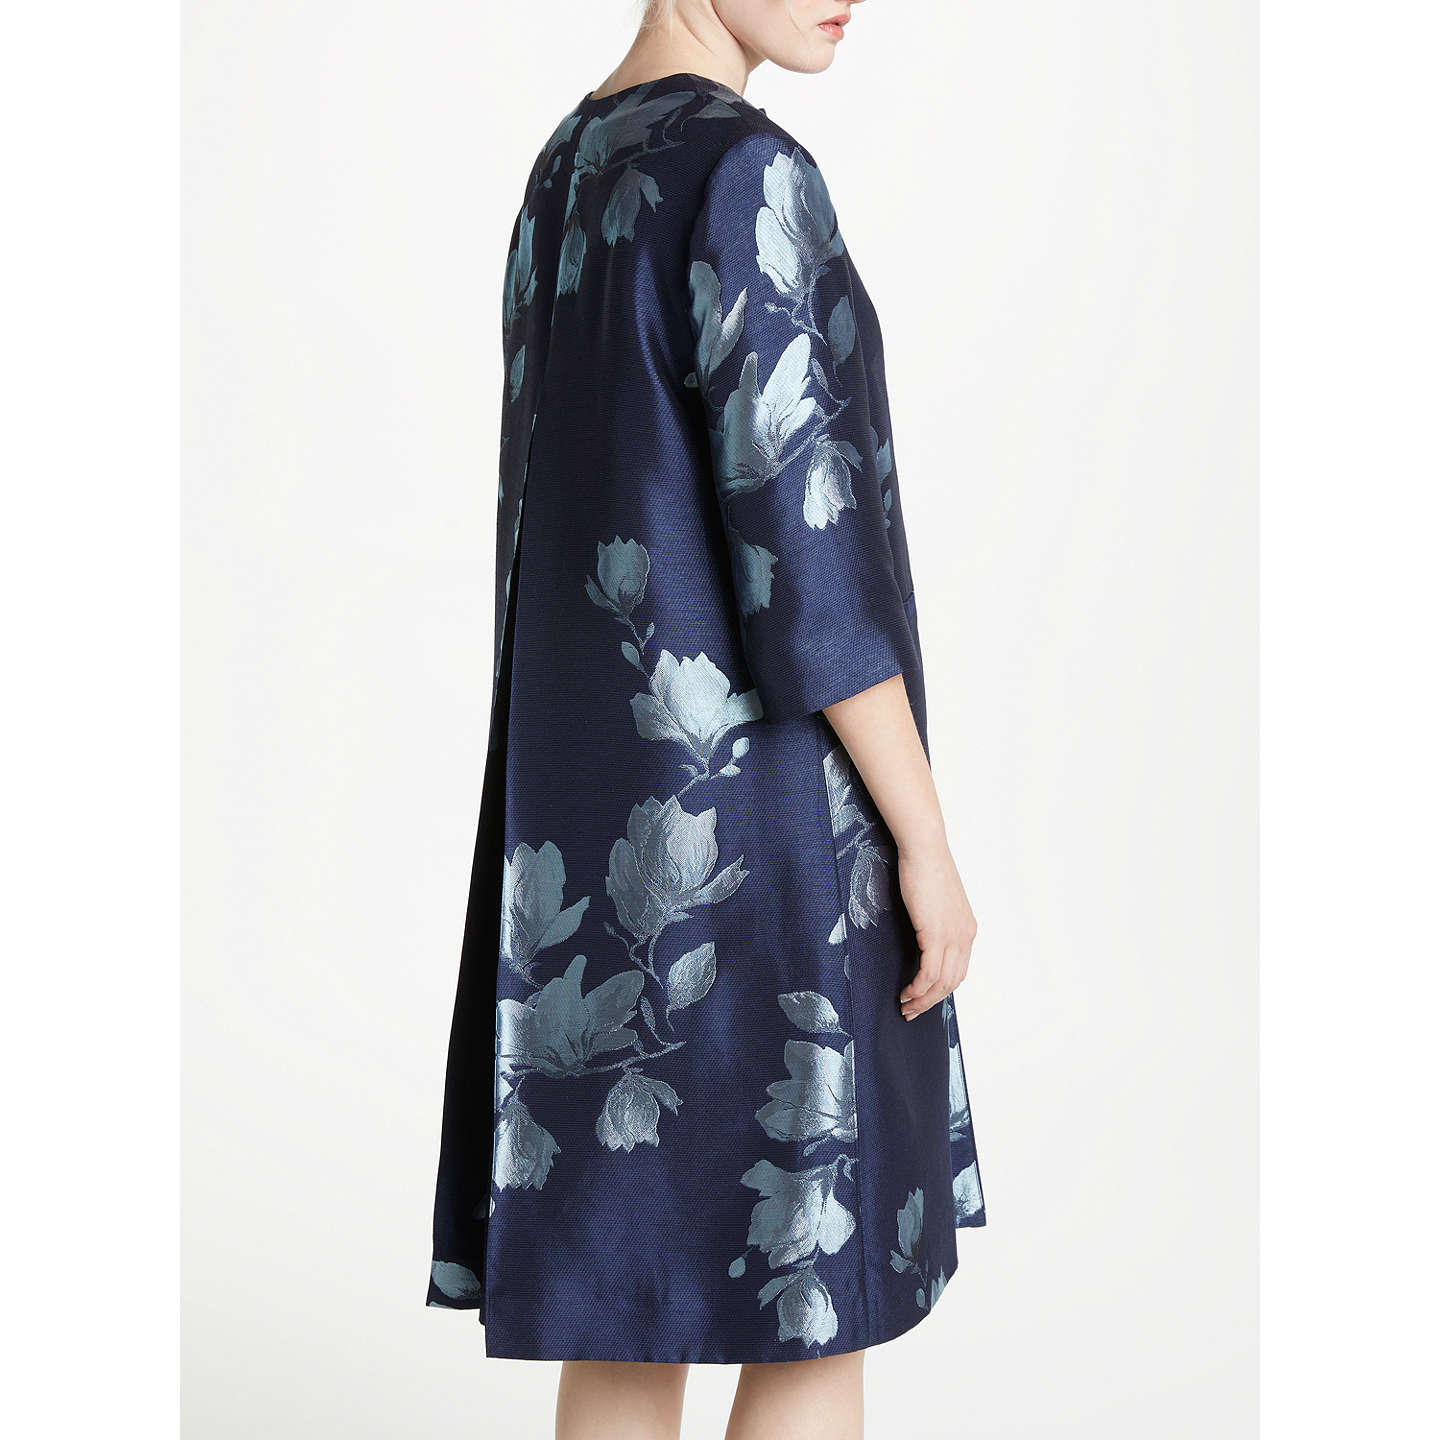 BuyBruce by Bruce Oldfield Jacquard Print Frock Coat, Navy/Ivory, 8 Online at johnlewis.com